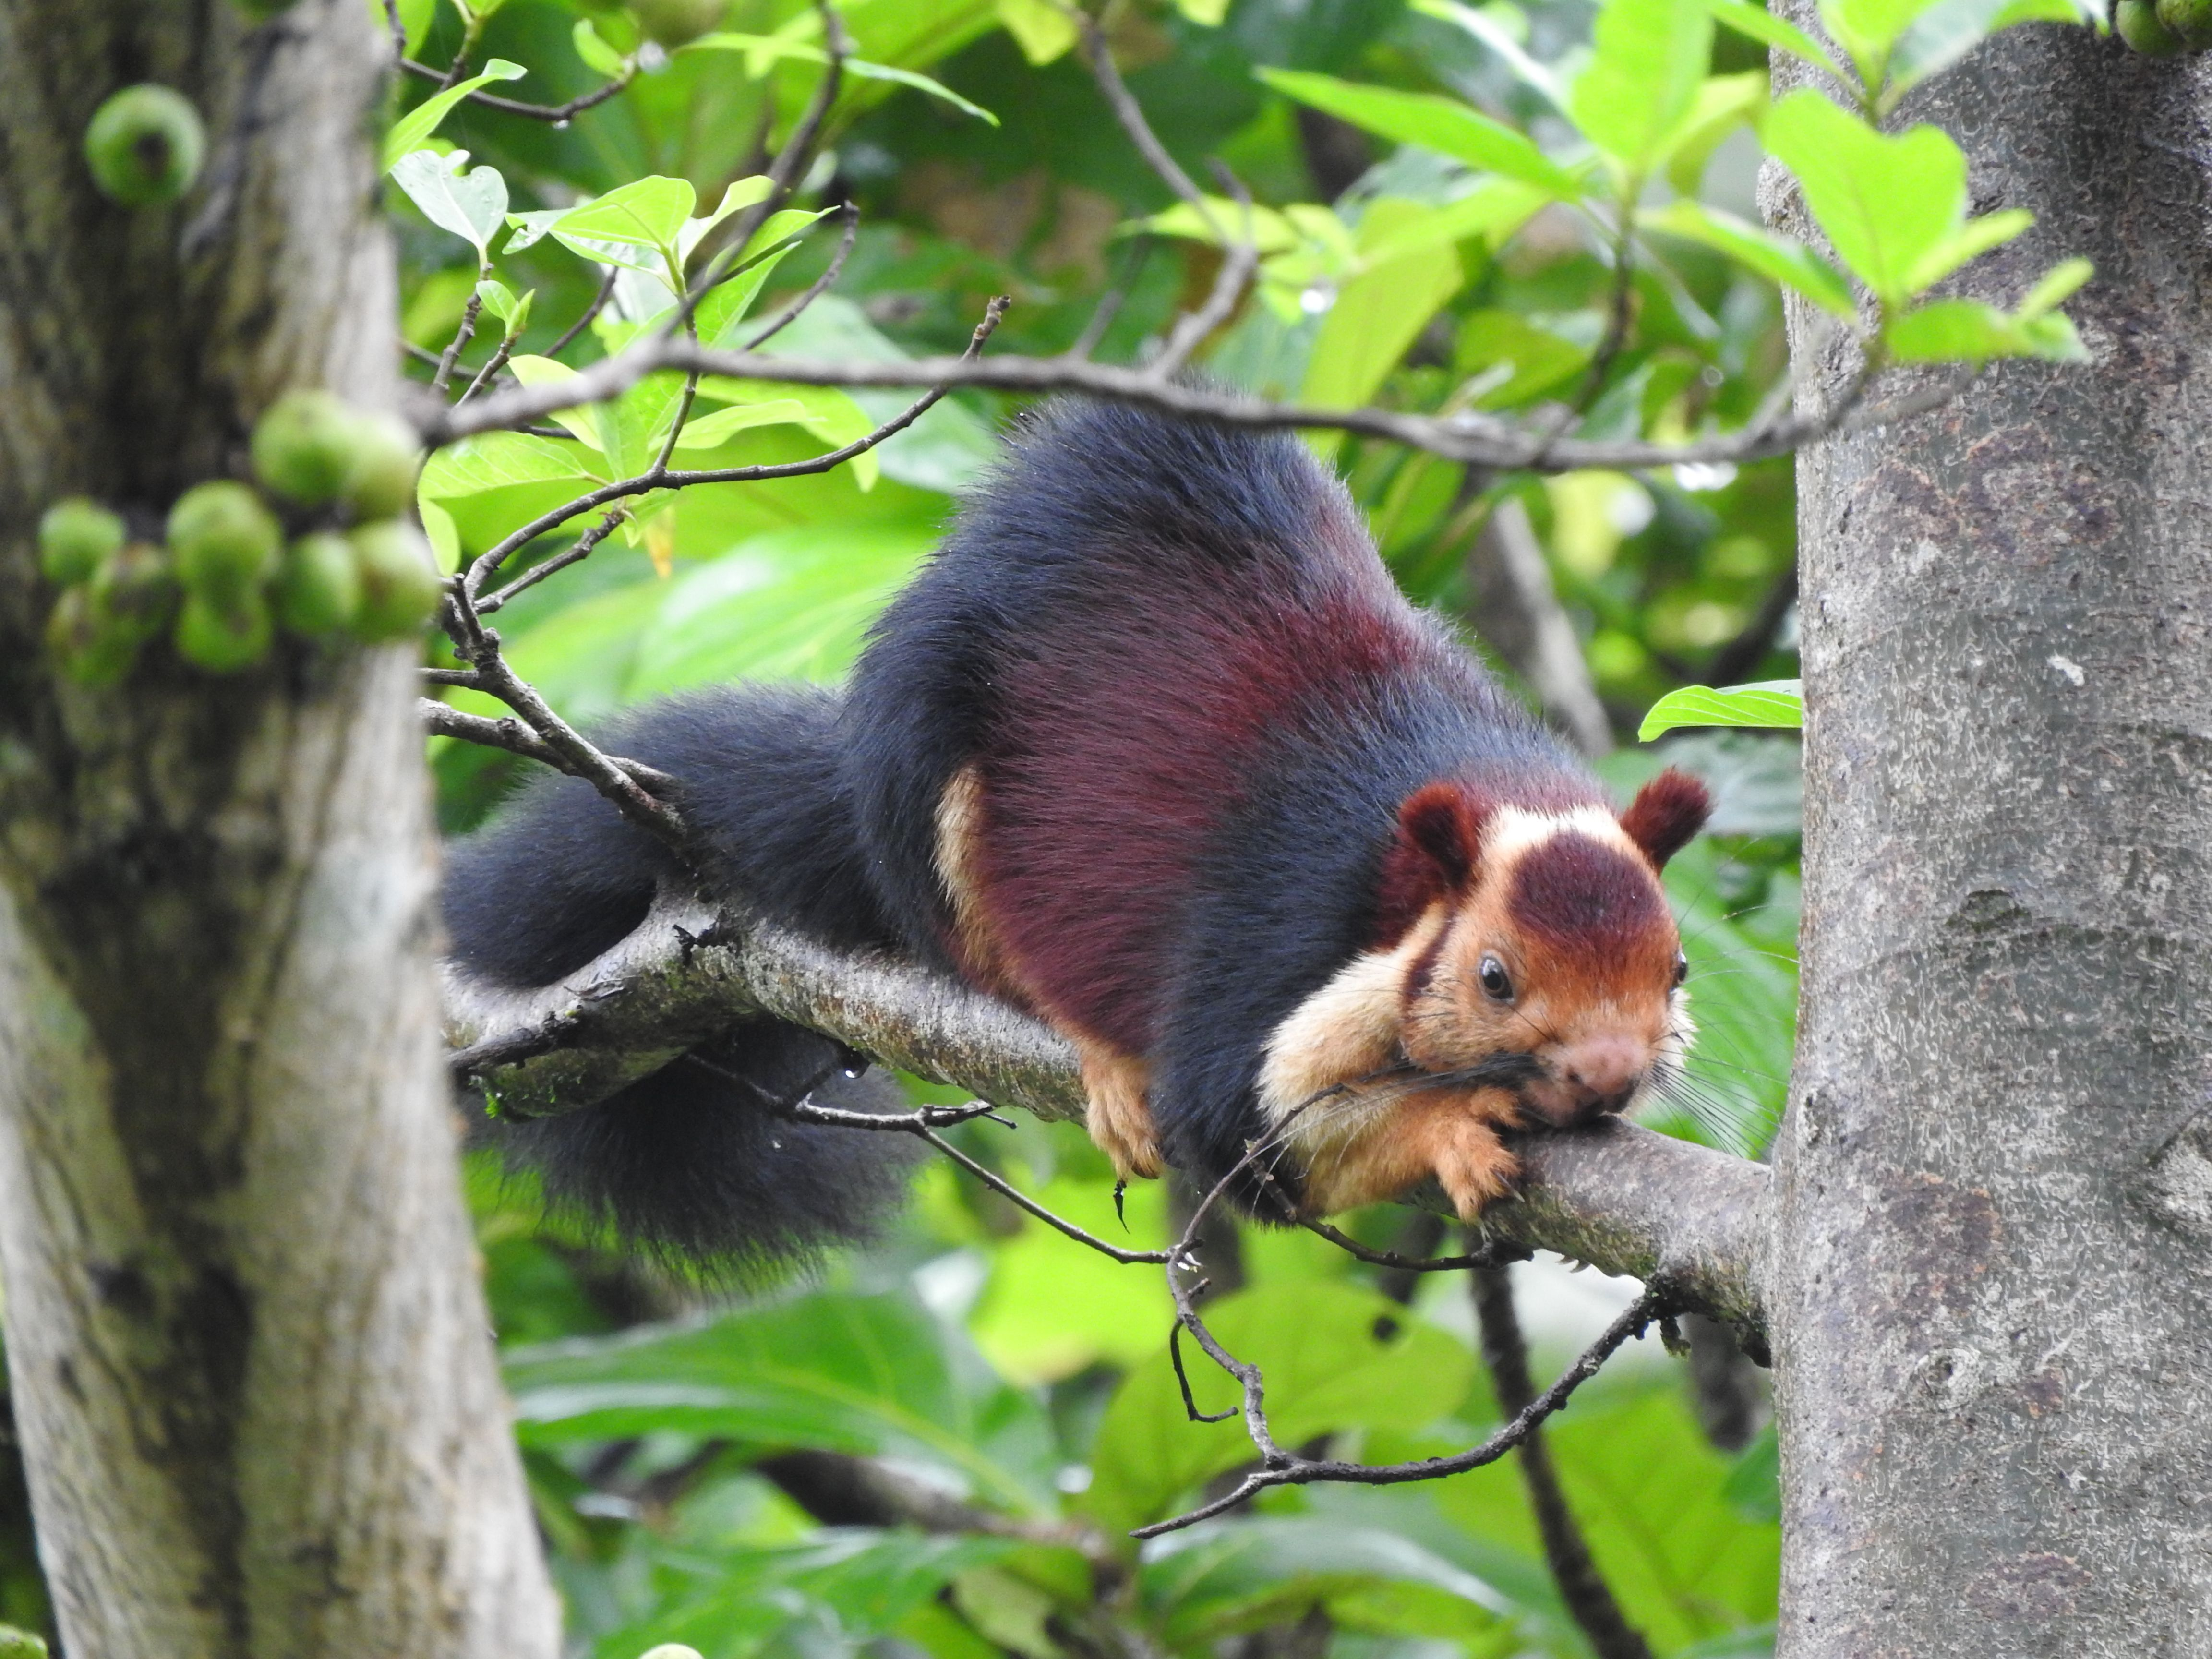 Malabar giant squirrel | Indian giant squirrel, Giant ...